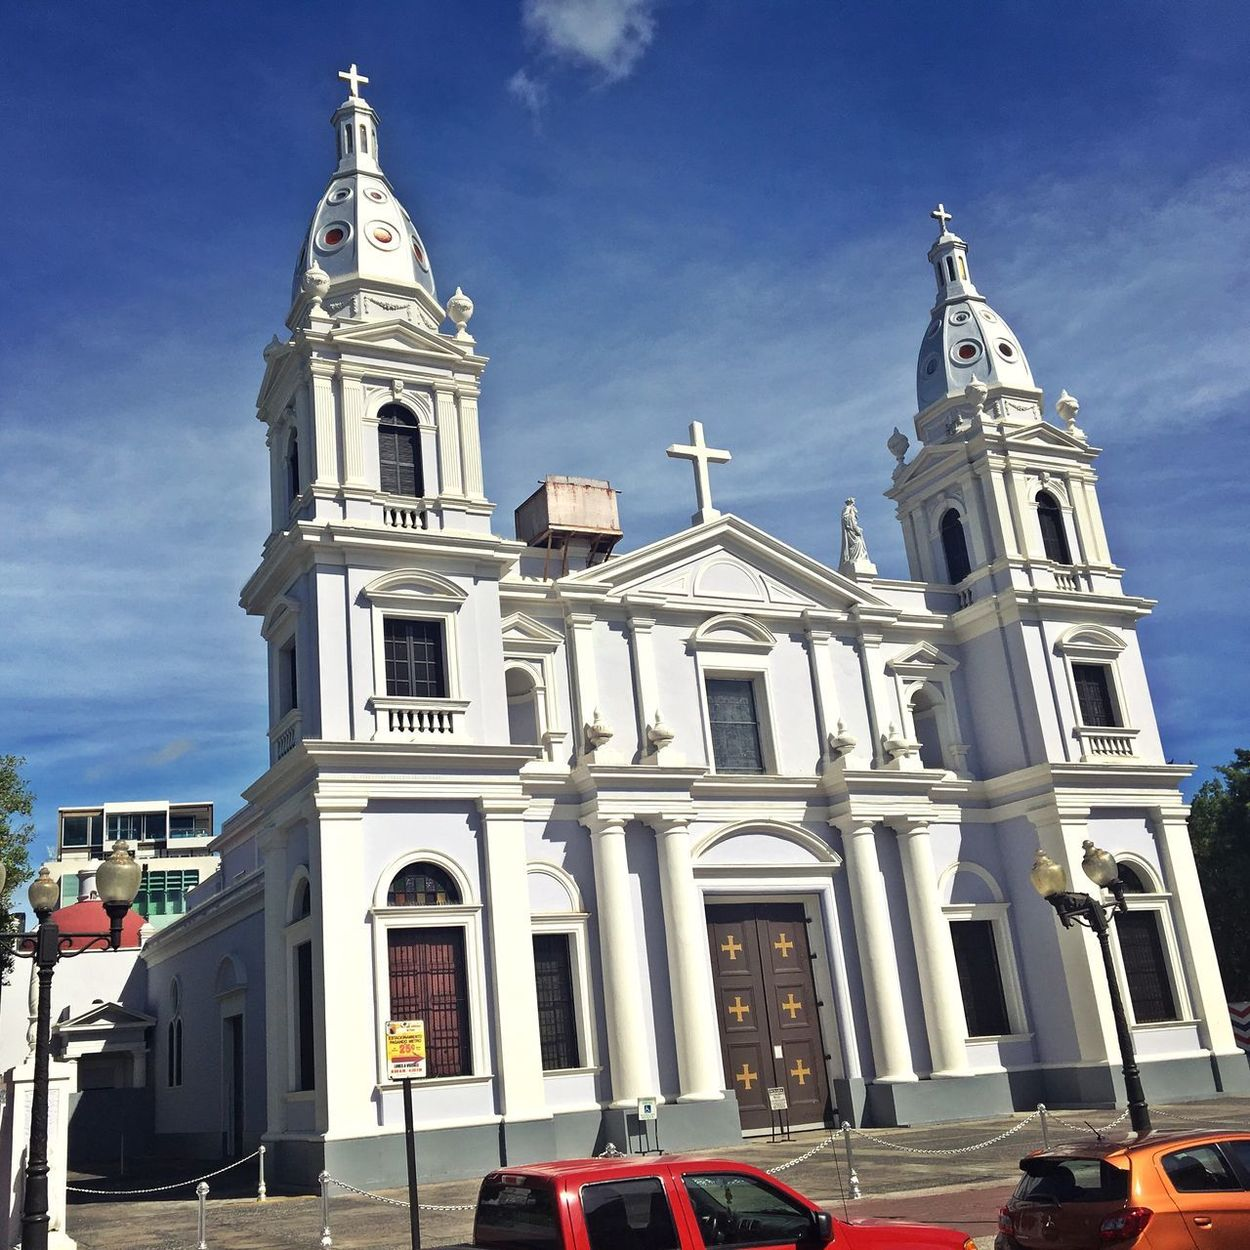 Puerto Rico Architecture Building Exterior Built Structure Sky Religion Outdoors Cloud - Sky History Low Angle View Day Place Of Worship No People City